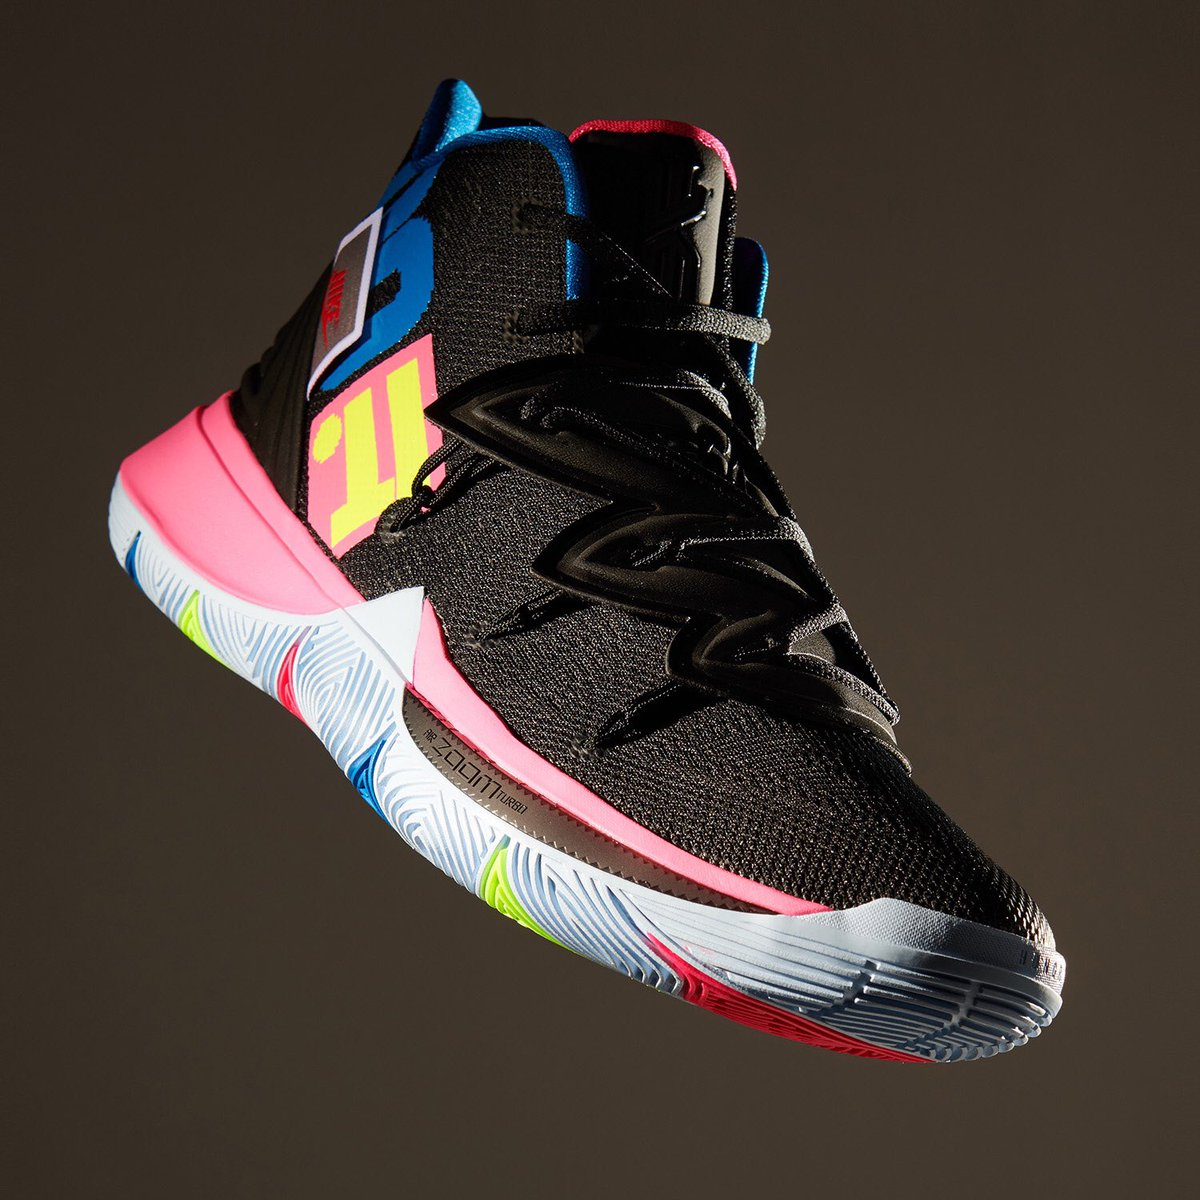 6d21f58c88653 Jimmy Jazz On Twitter The Nike Kyrie 5 Just Do It Dropped At